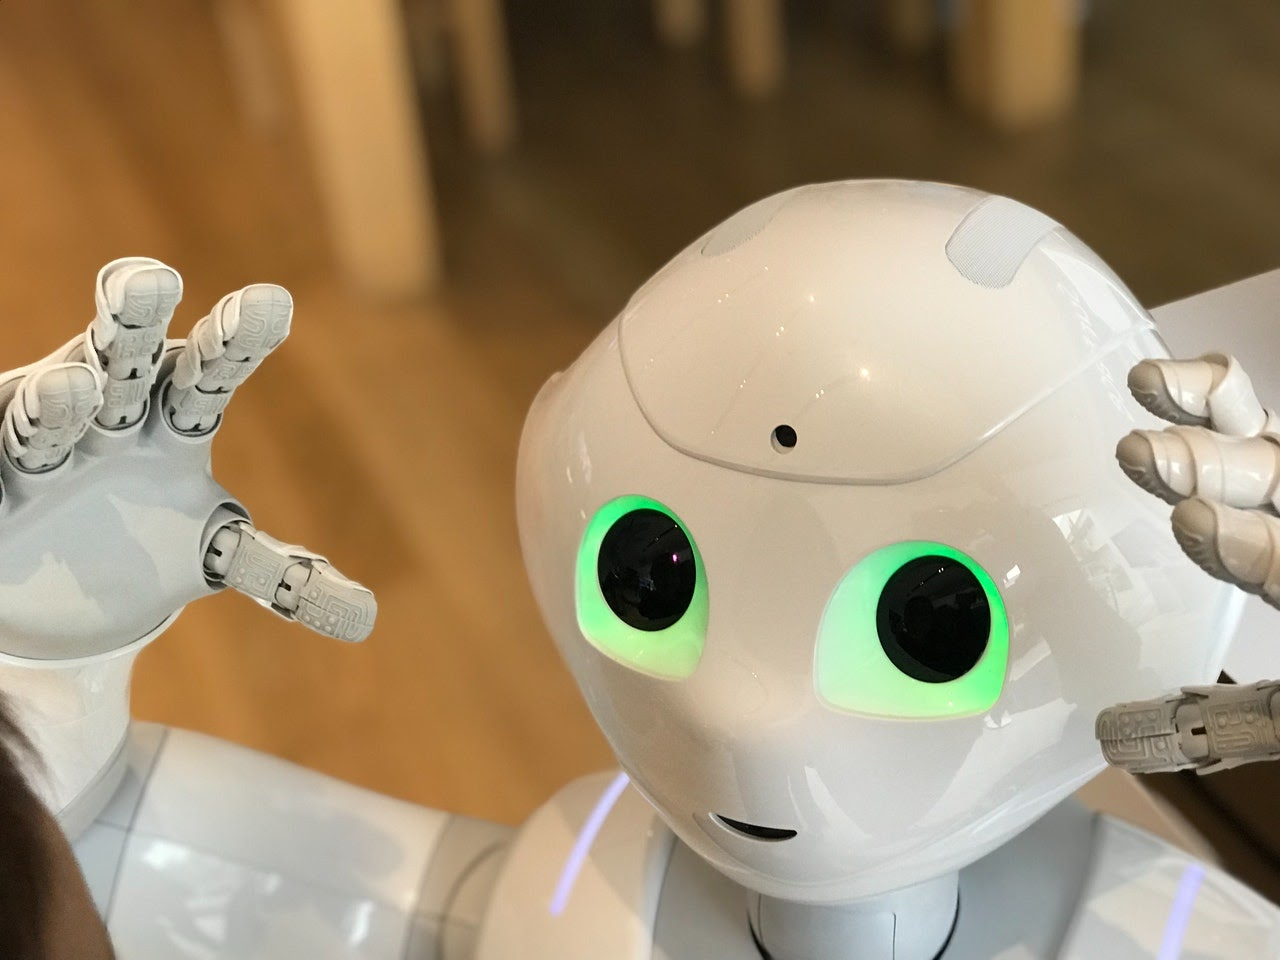 What is AI technology?